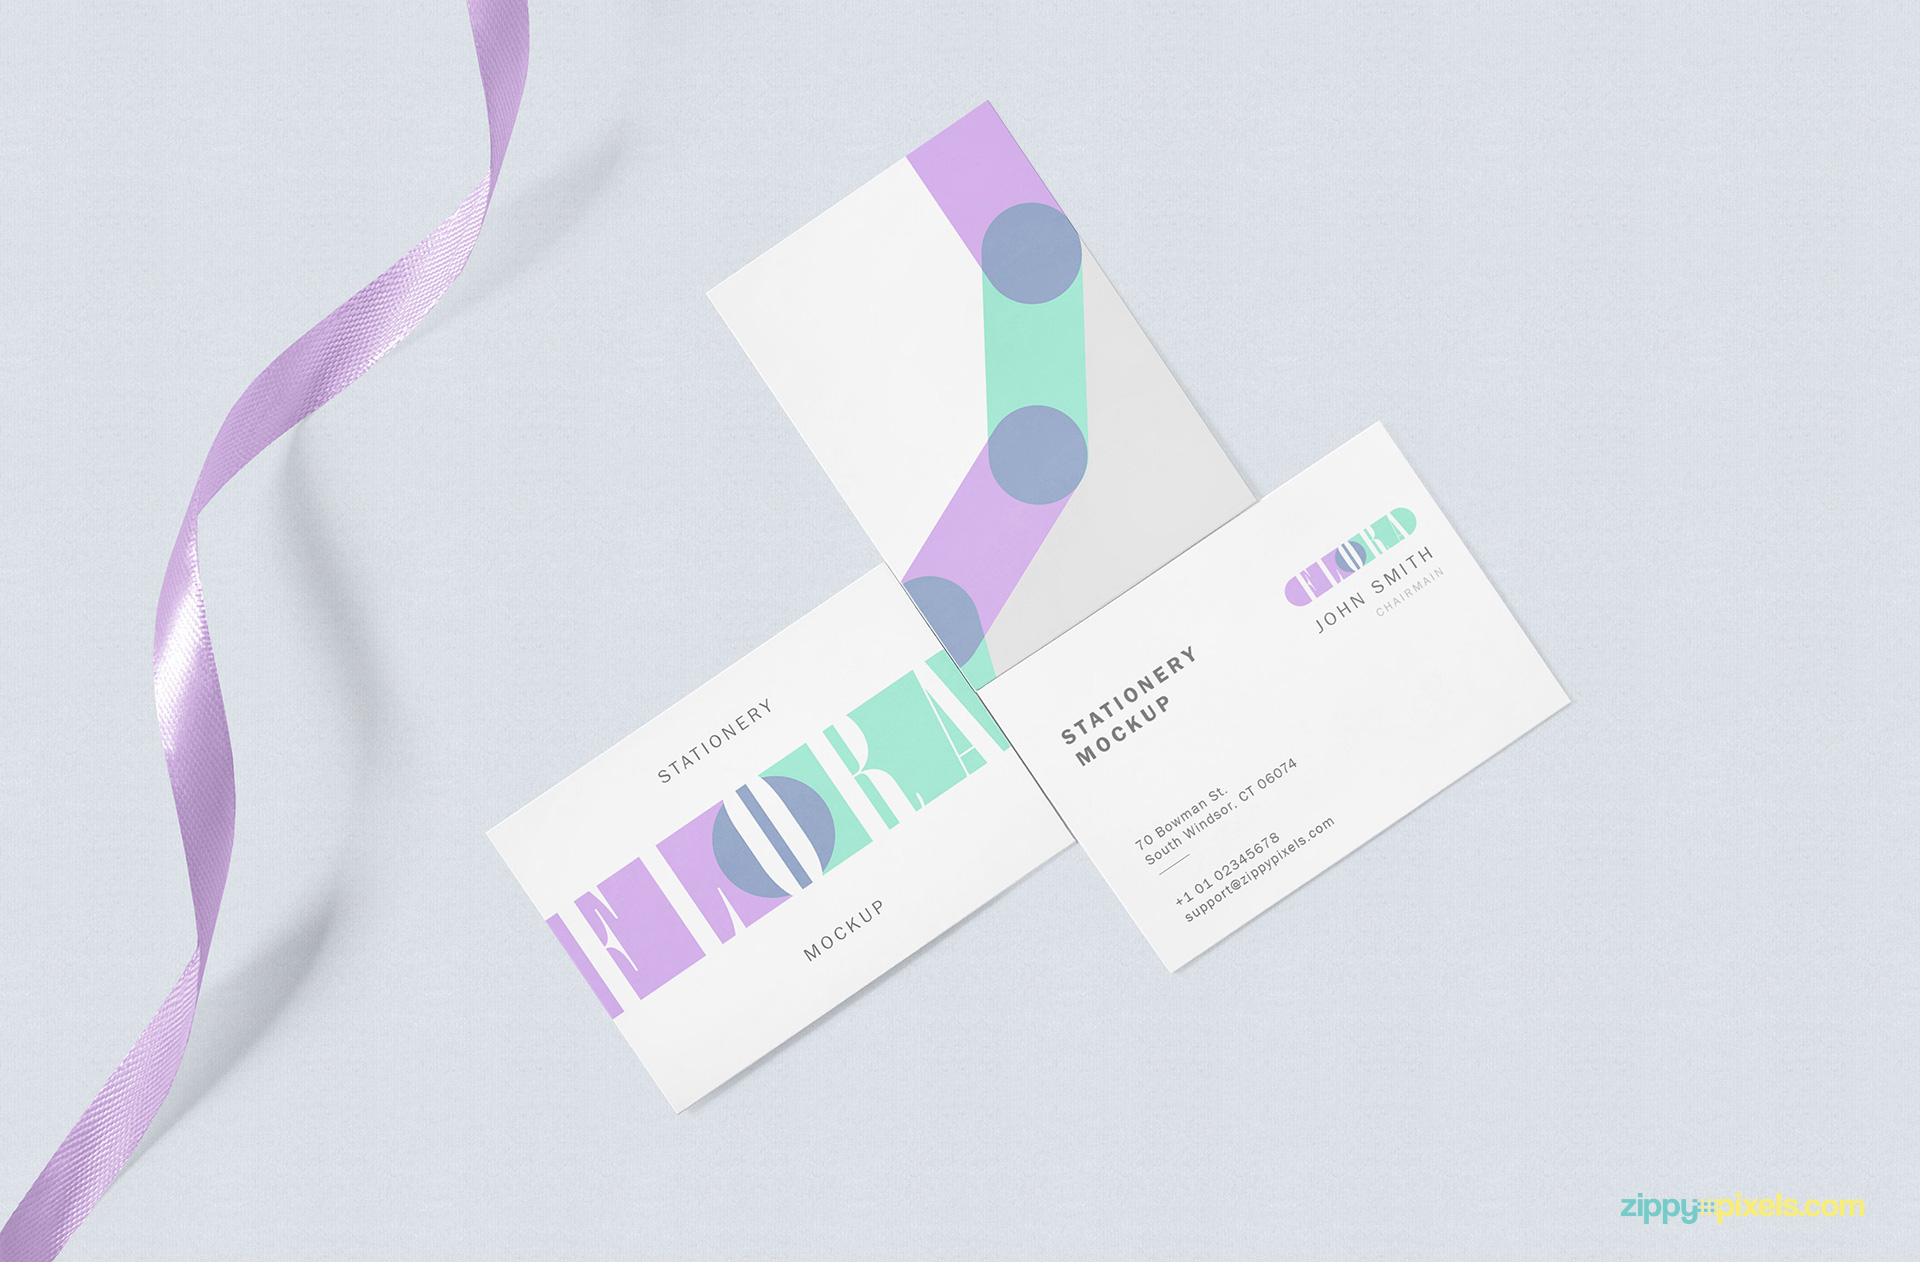 Free business card mock up scene.